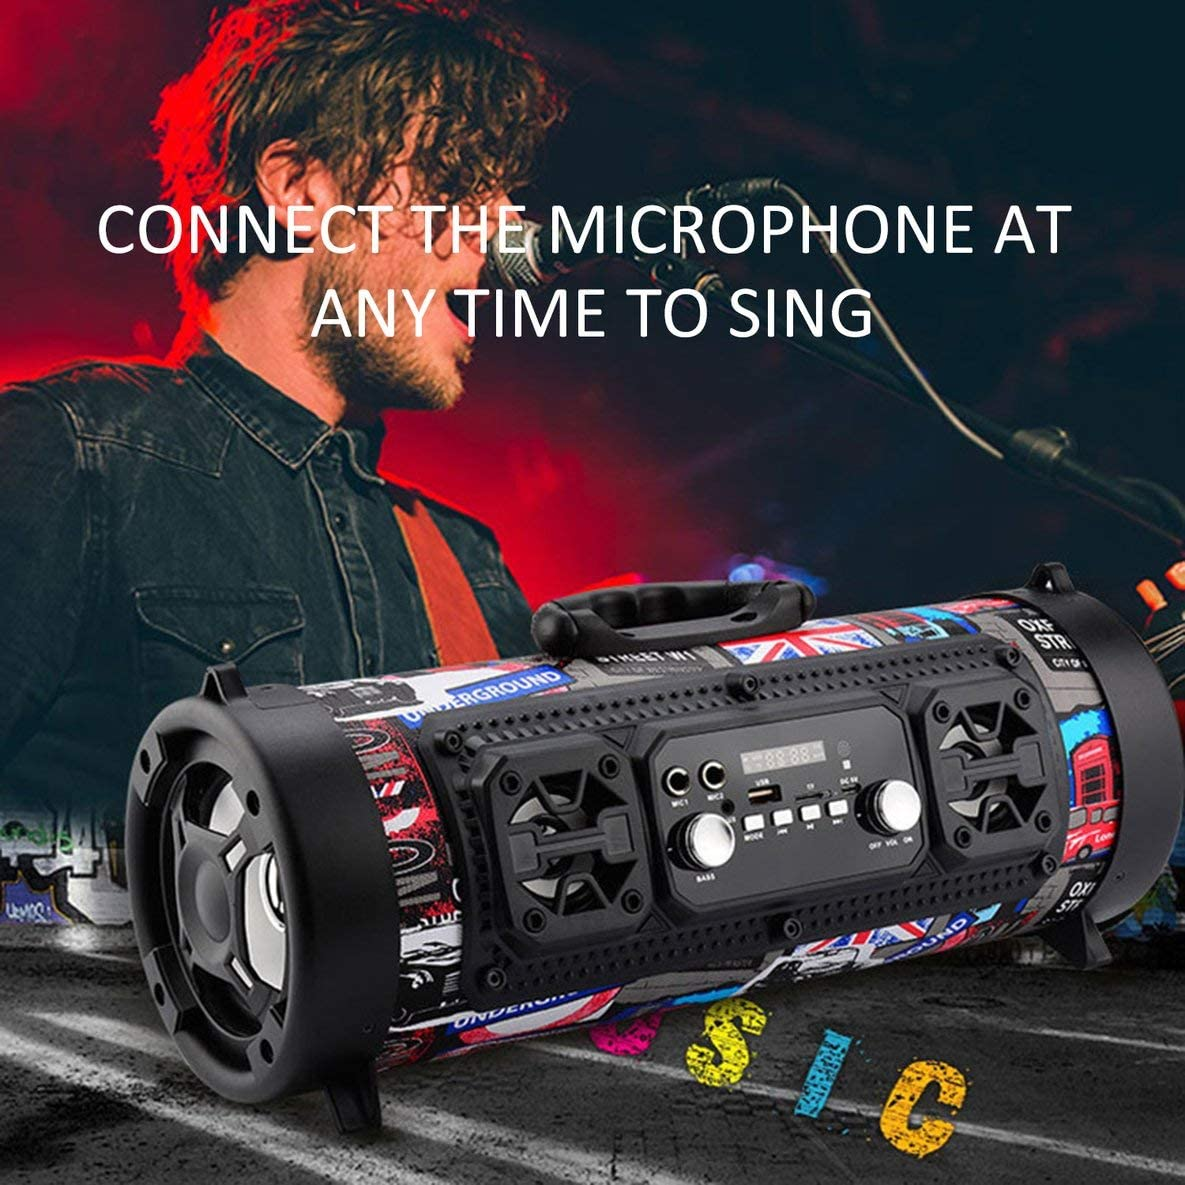 Noradtjcca Outdoor Portable Mobile Powerful Wireless HiFi Stereo BT Speaker Soundbox for PC Phone Music Equipment